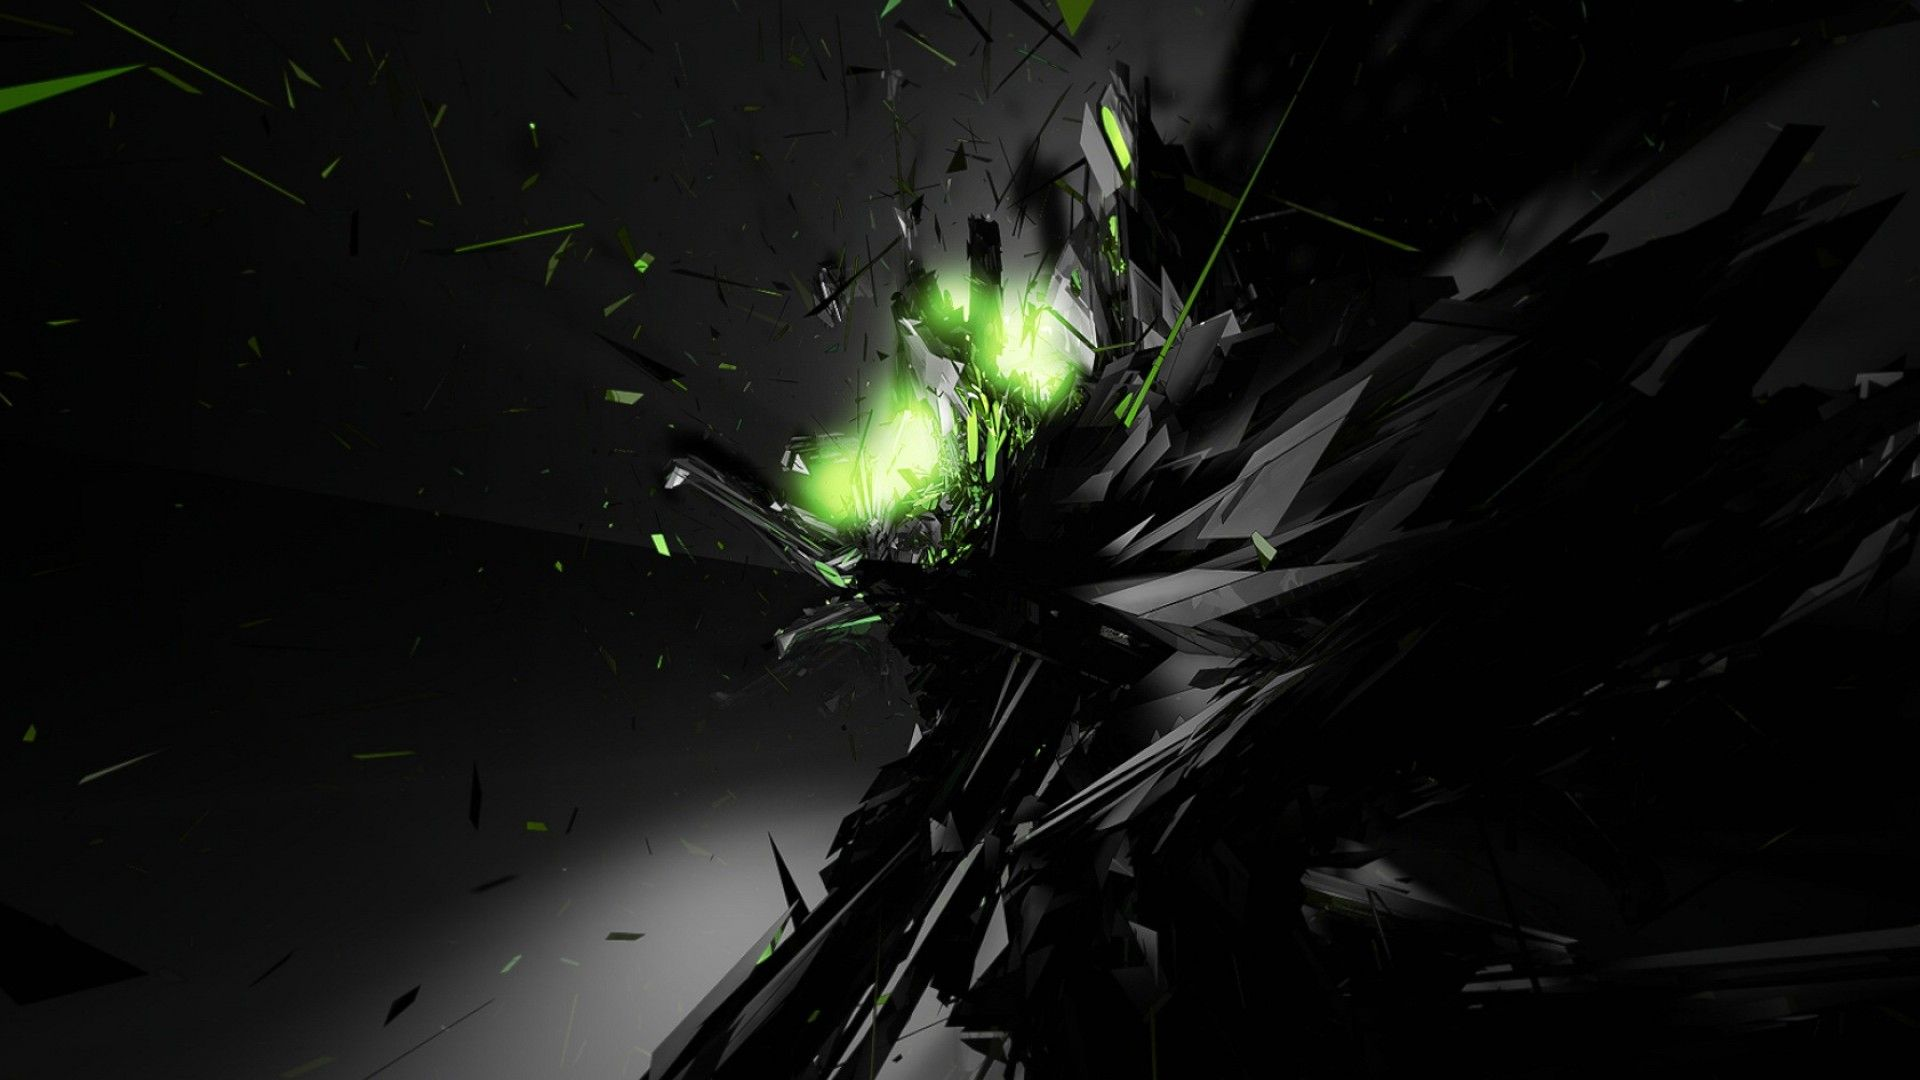 Black Abstract Green Glow Desktop Wallpaper